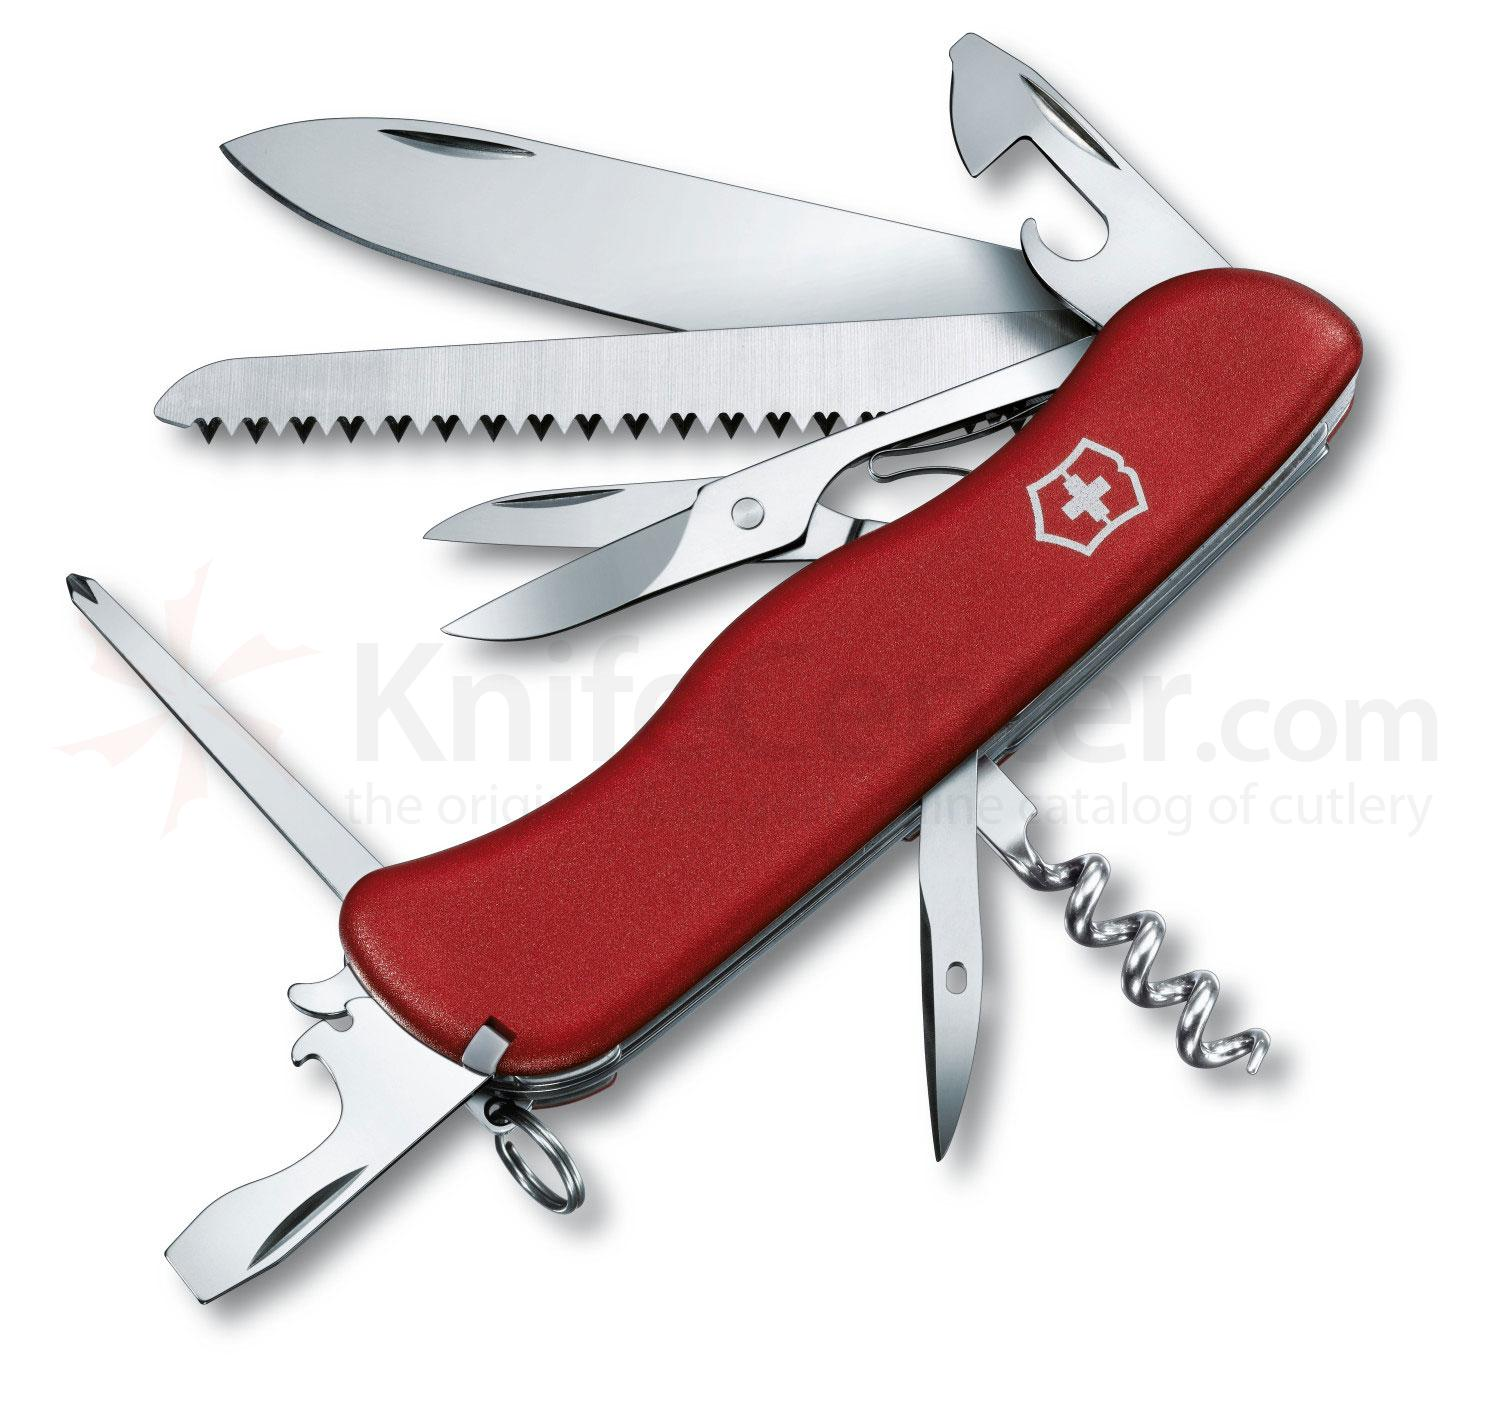 Victorinox Swiss Army Outrider Multi-Tool, Red, 4.37 inch Closed